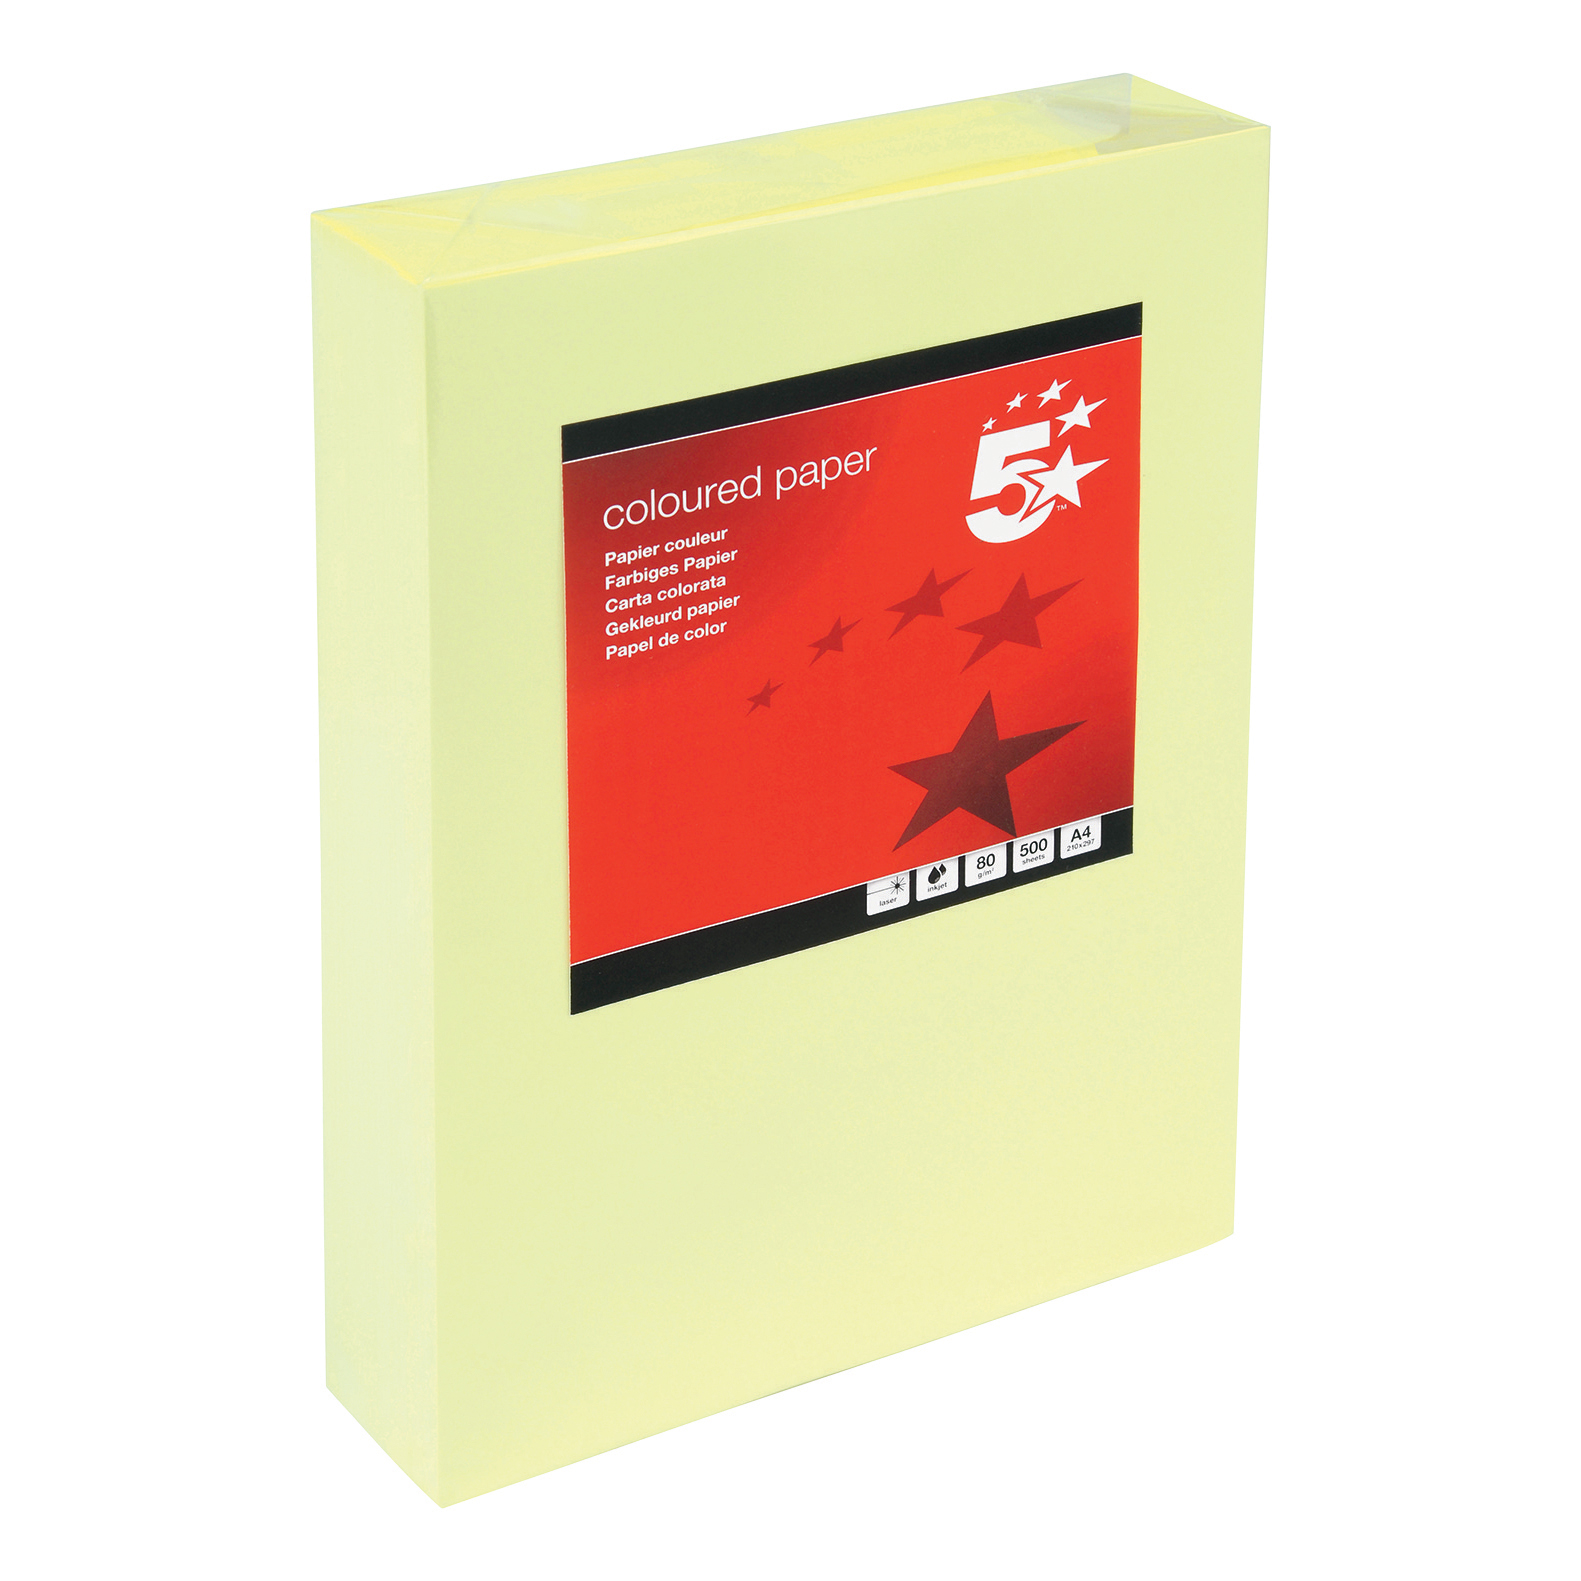 A4 5 Star Office Coloured Copier Paper Multifunctional Ream-Wrapped 80gsm A4 Light Yellow [500 Sheets]